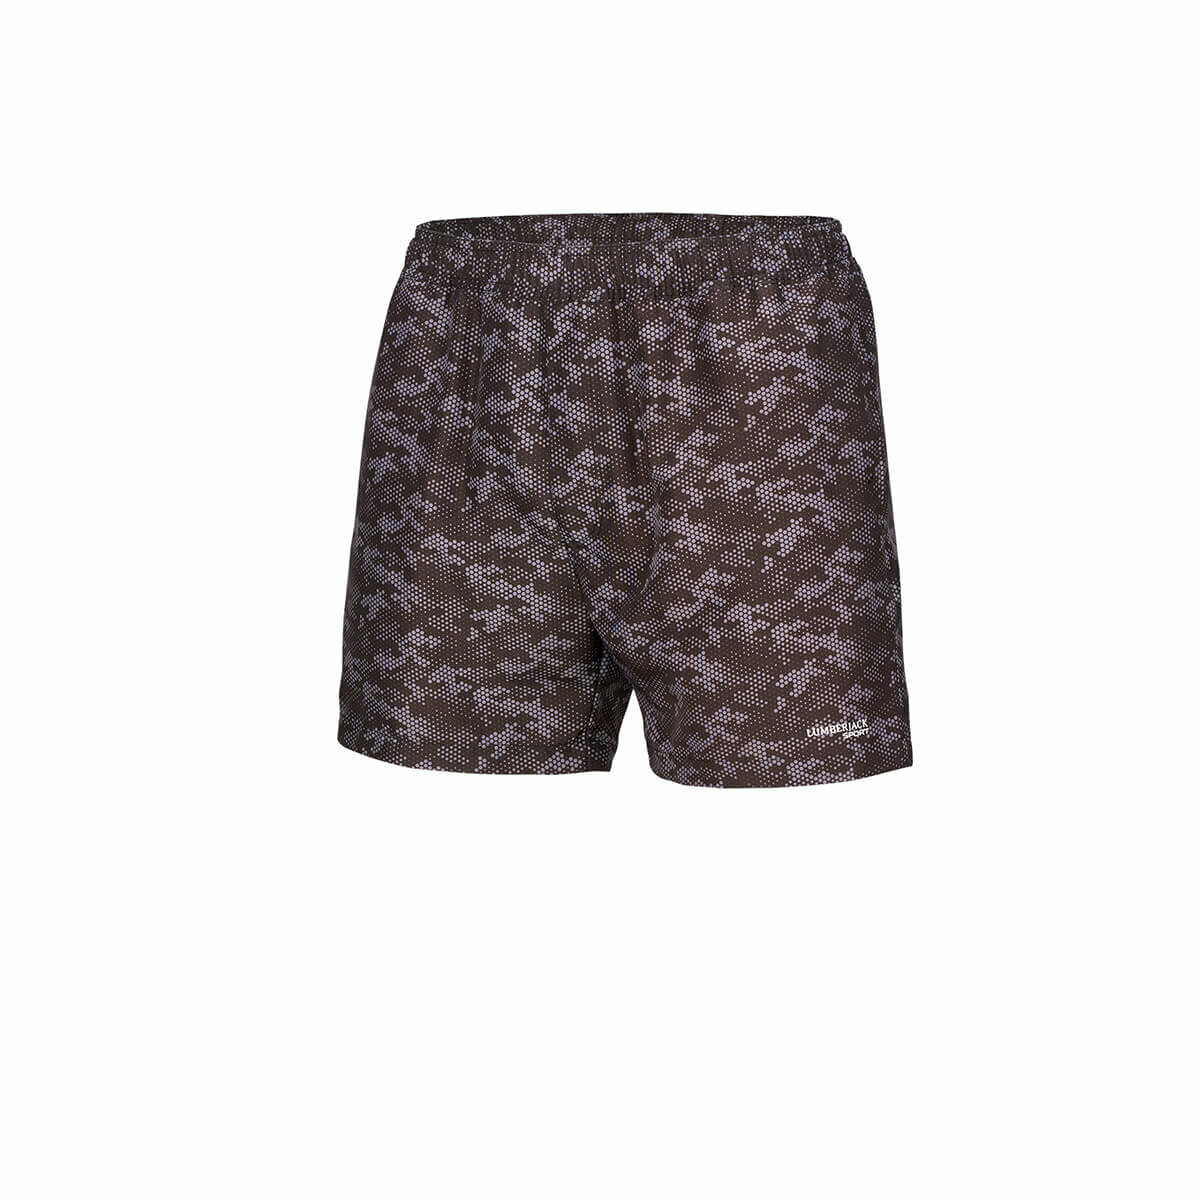 FLO MAXON Camouflage Color Men 'S Shorts LUMBERJACK